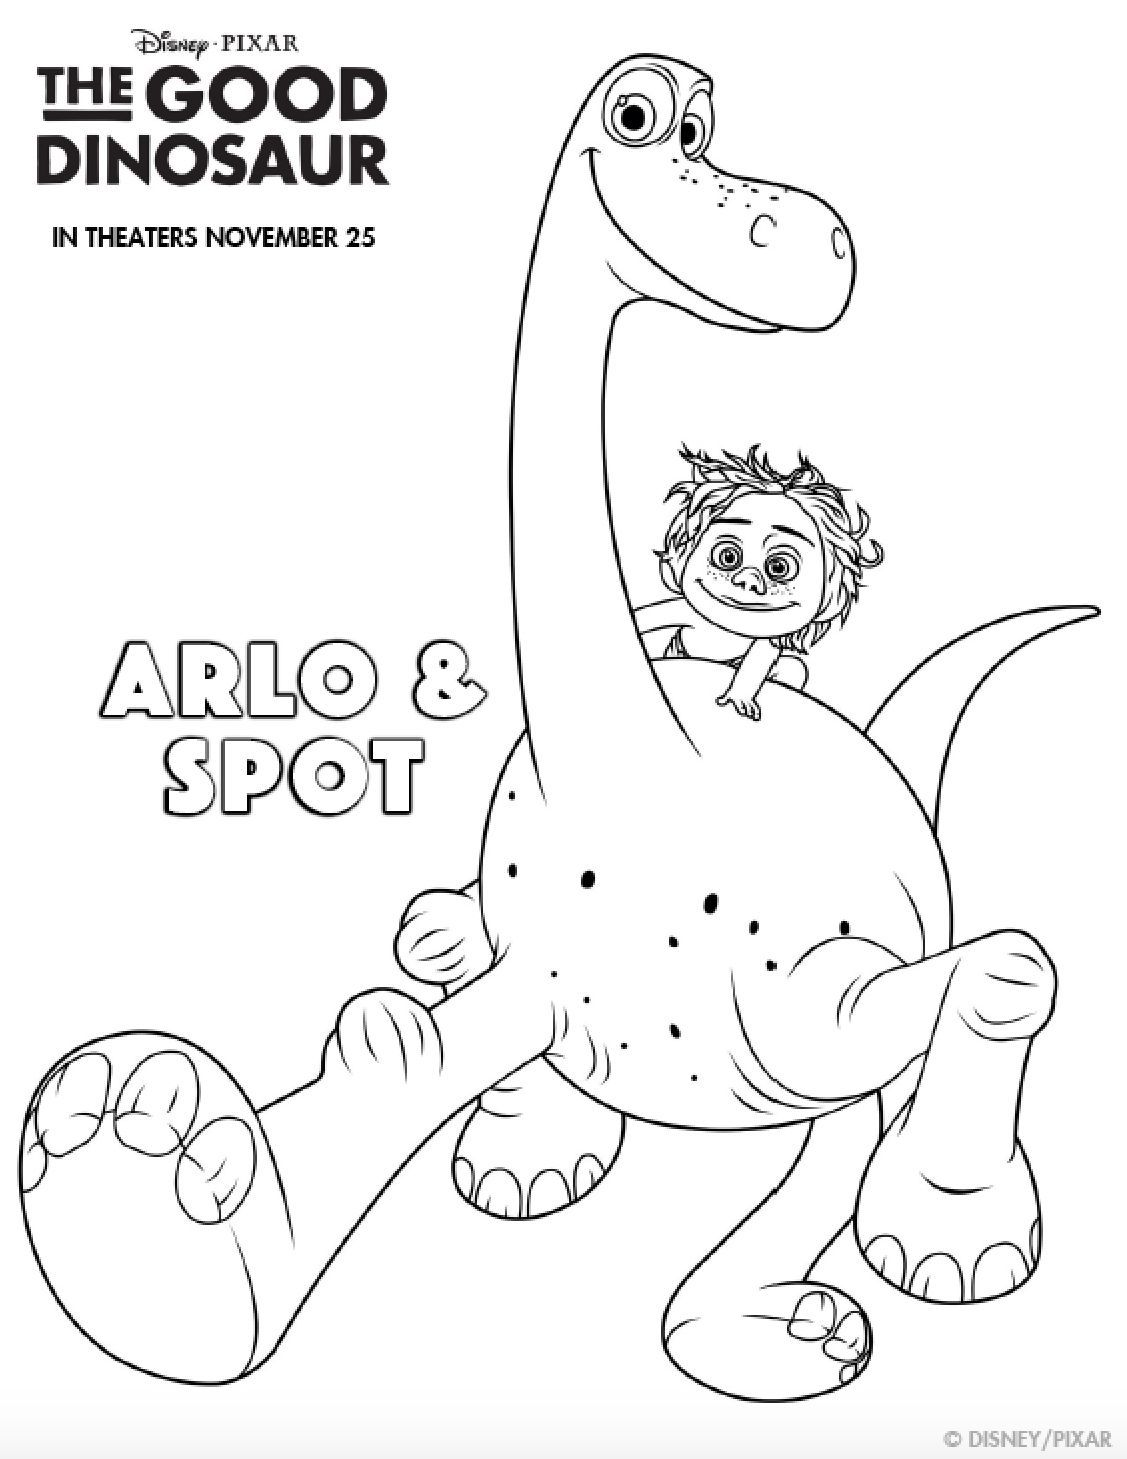 Printable coloring pages dinosaurs - The Good Dinosaur Coloring Page